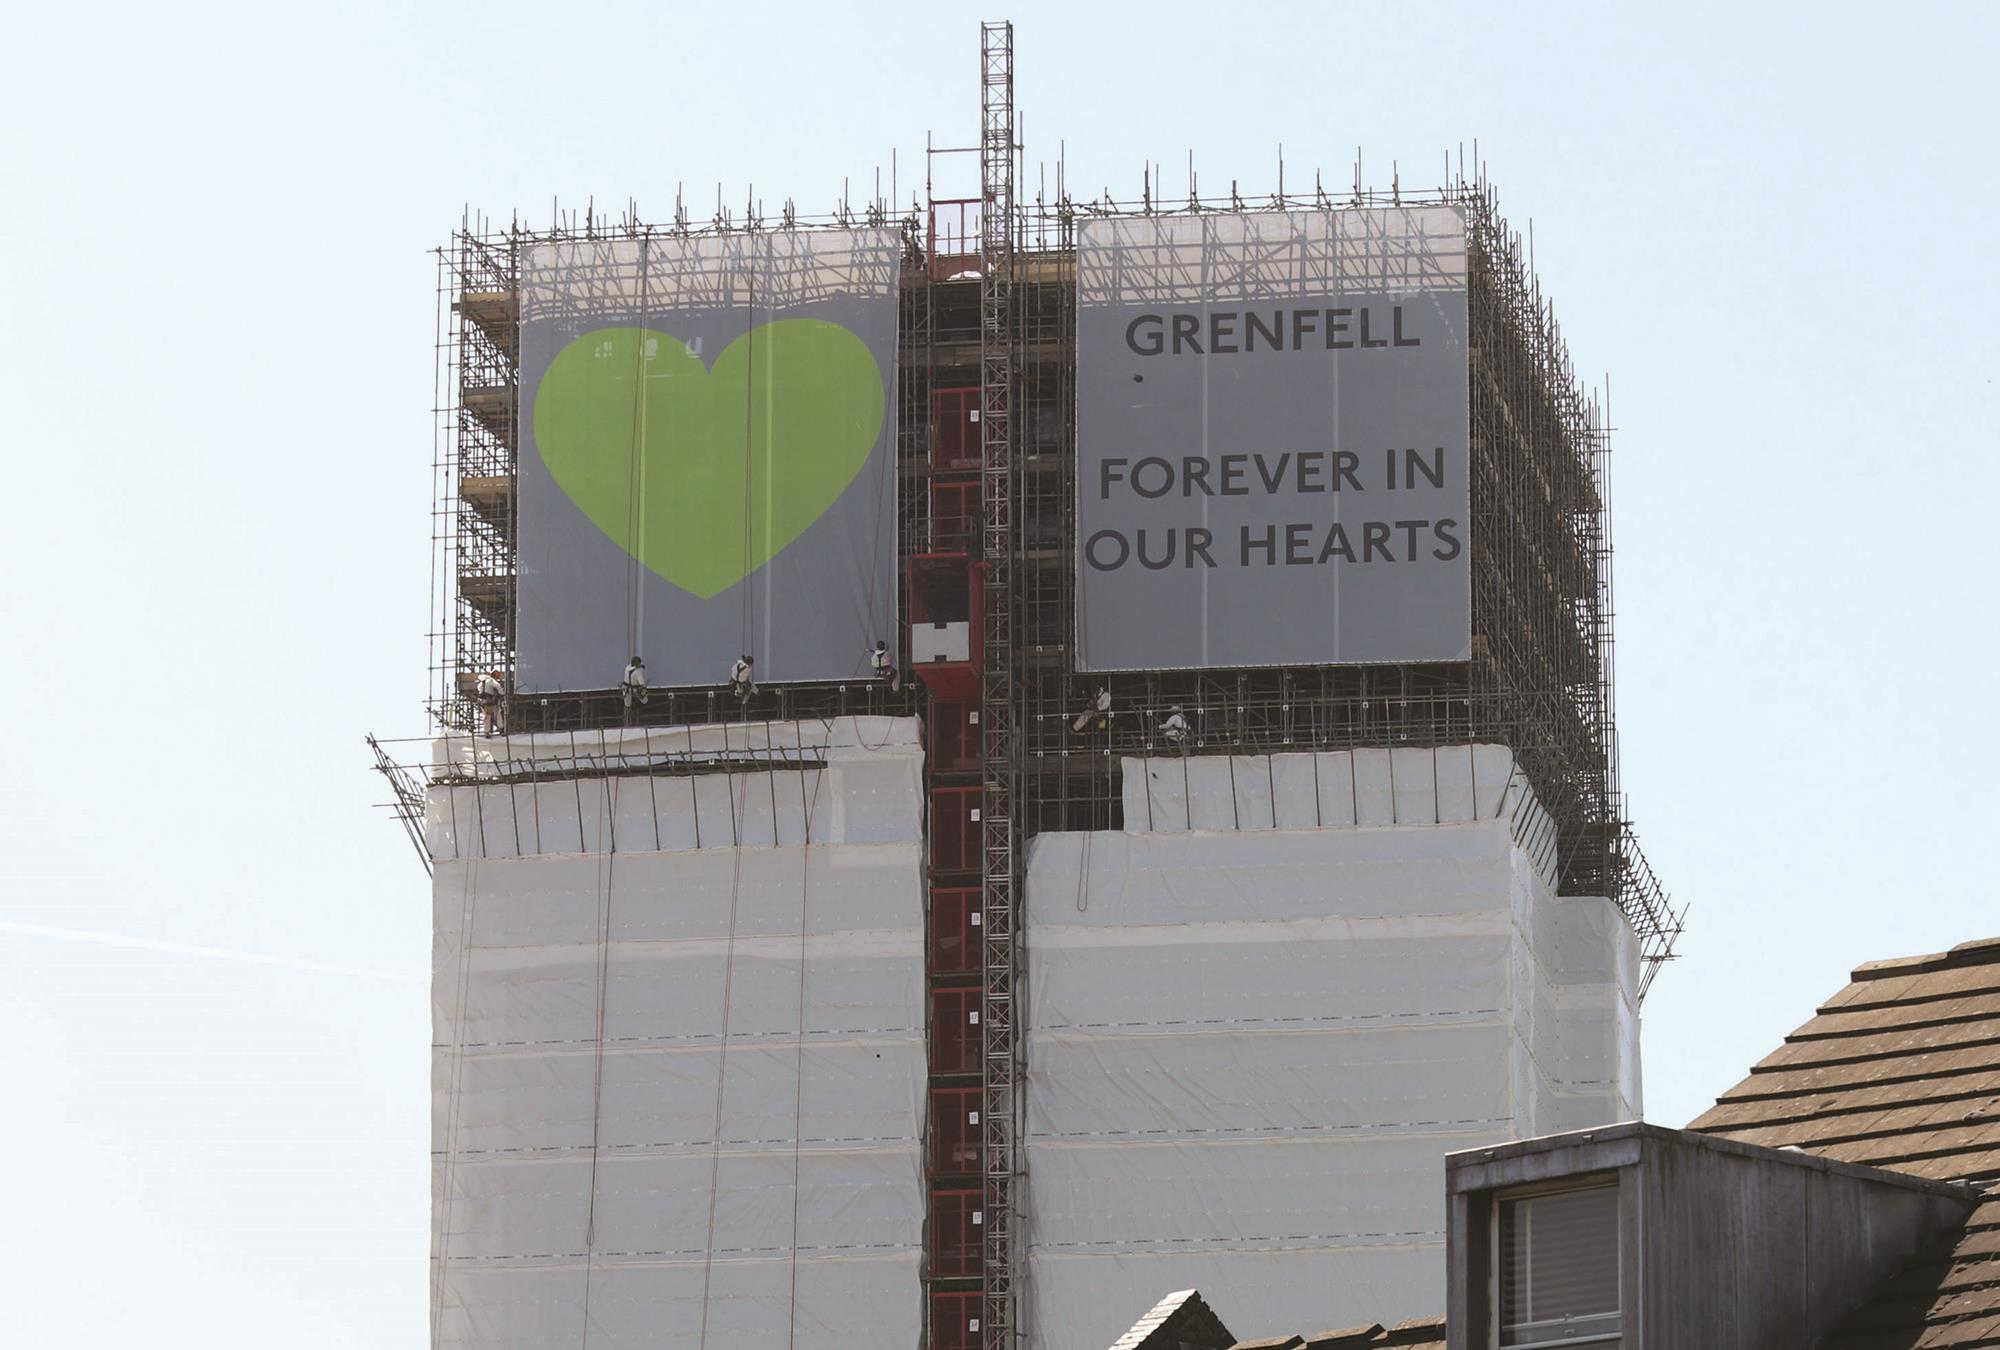 One year on: What have we learned so far from Grenfell? Part